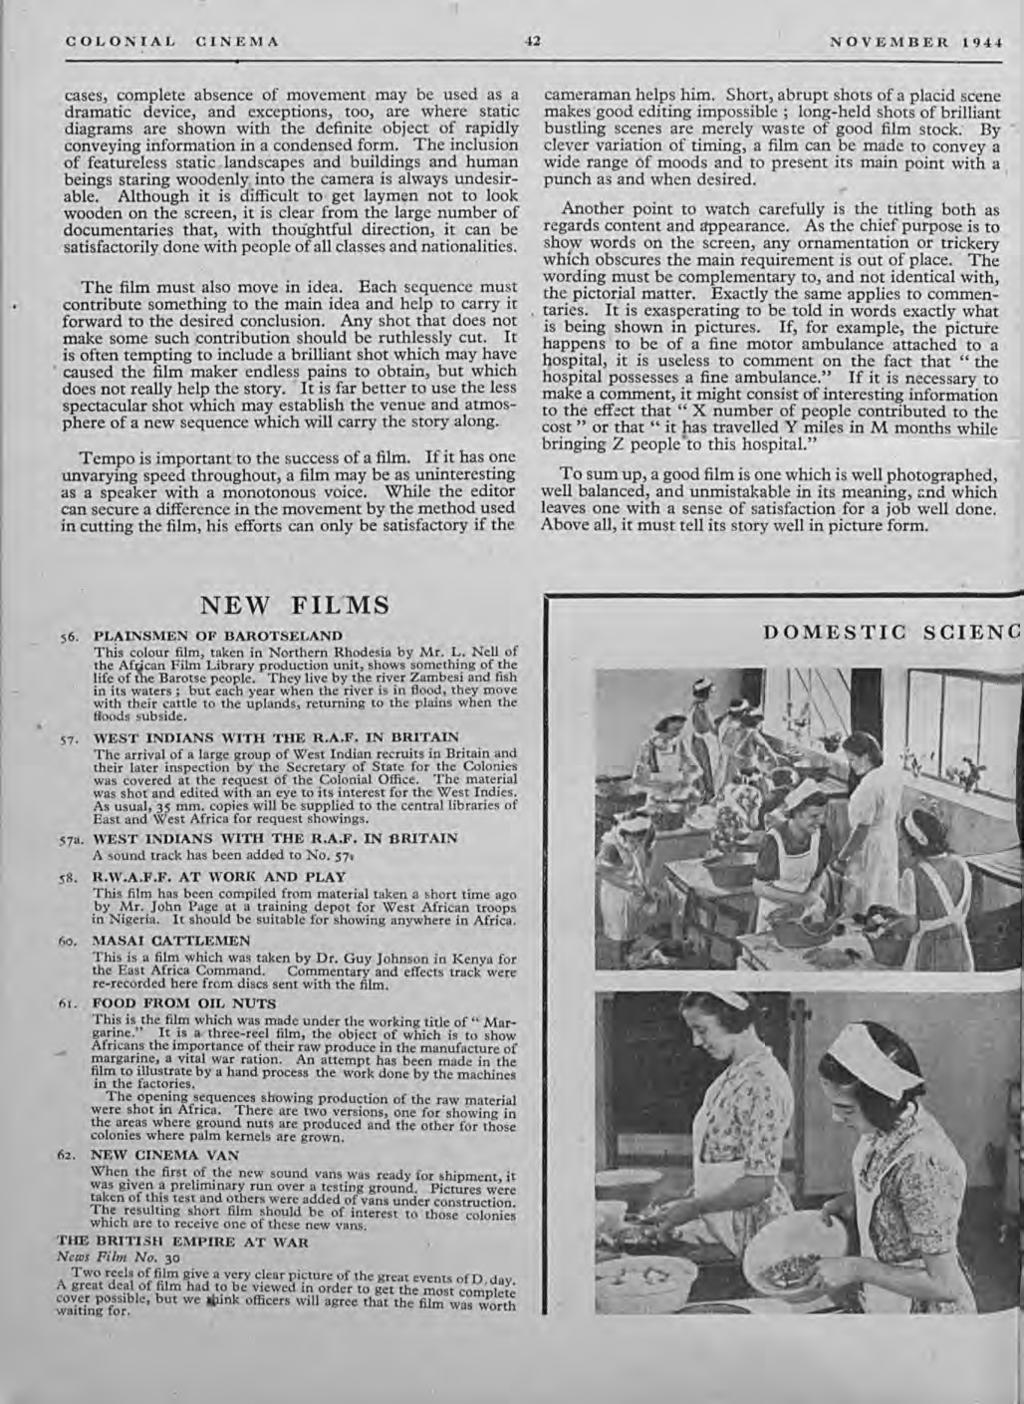 COLONIAL CINEMA 42 NOVEMBER 1944 cases, complete absence of movement may be used as a dramatic device, and exceptions, too, are where static diagrams are shown with the definite object of rapidly